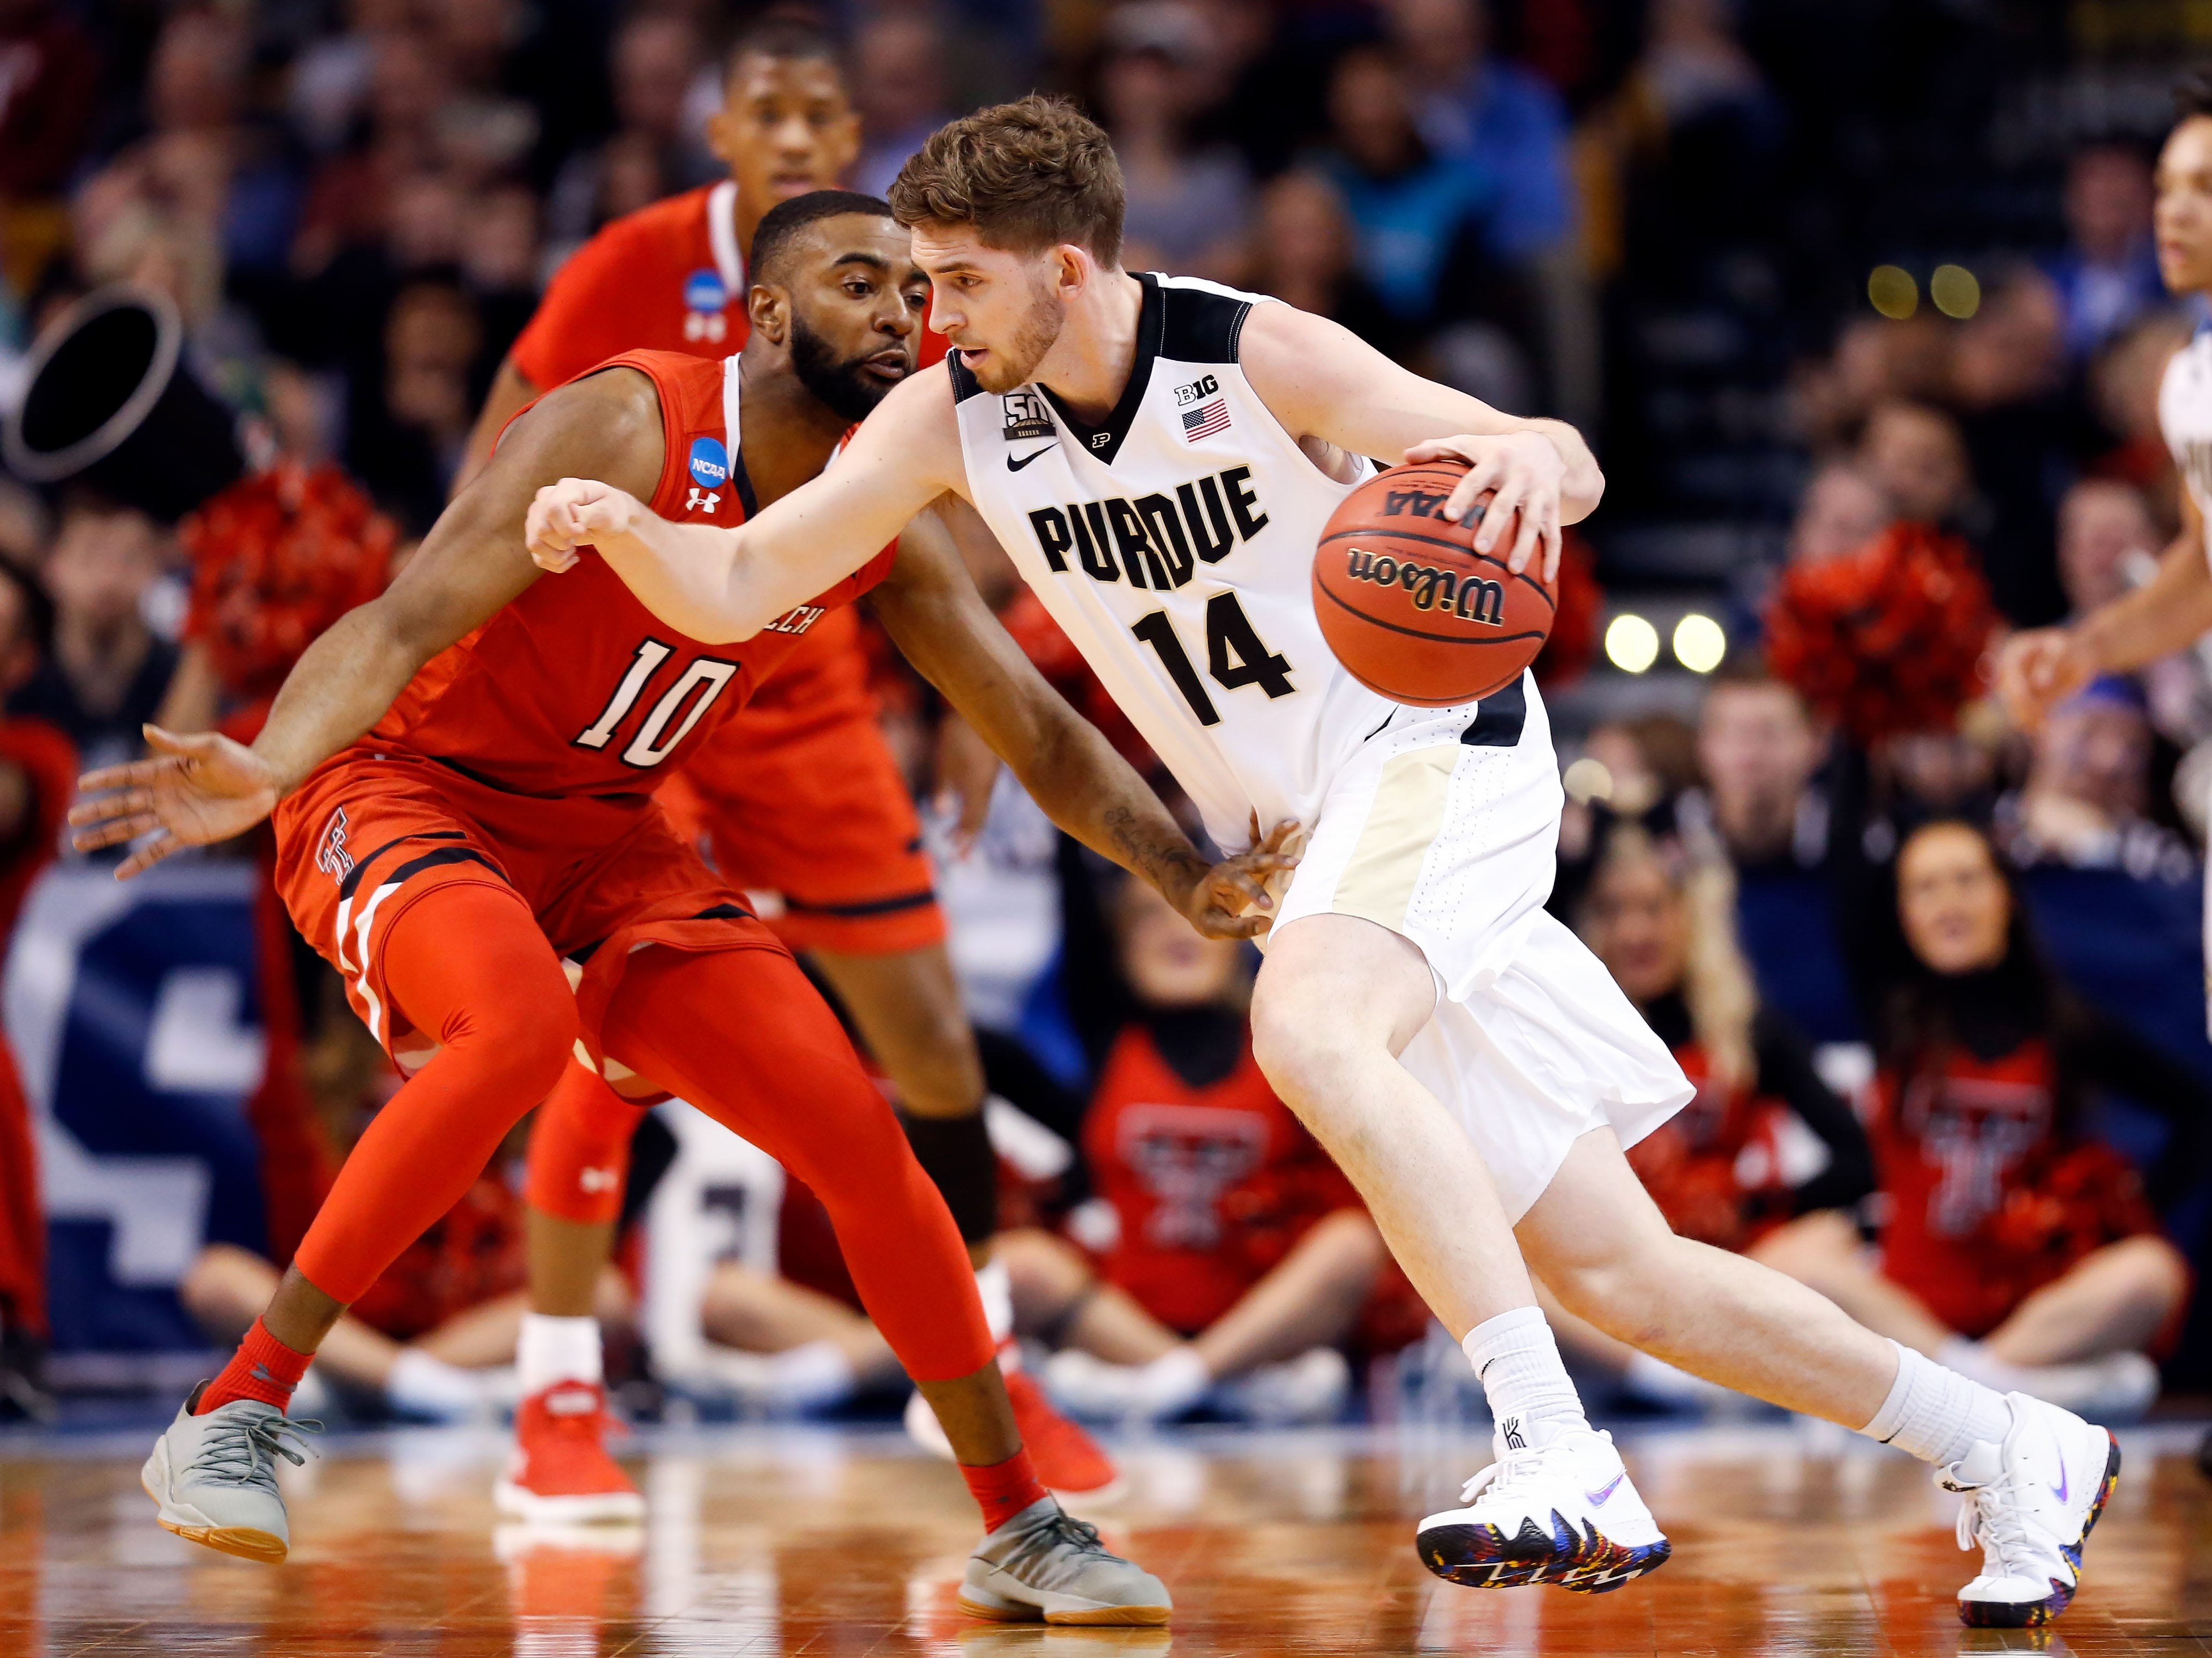 Purdue Boilermakers guard Ryan Cline (14) drives against Texas Tech Red Raiders guard Niem Stevenson (10) during the first half in the semifinals of the East regional of the 2018 NCAA Tournament at the TD Garden.